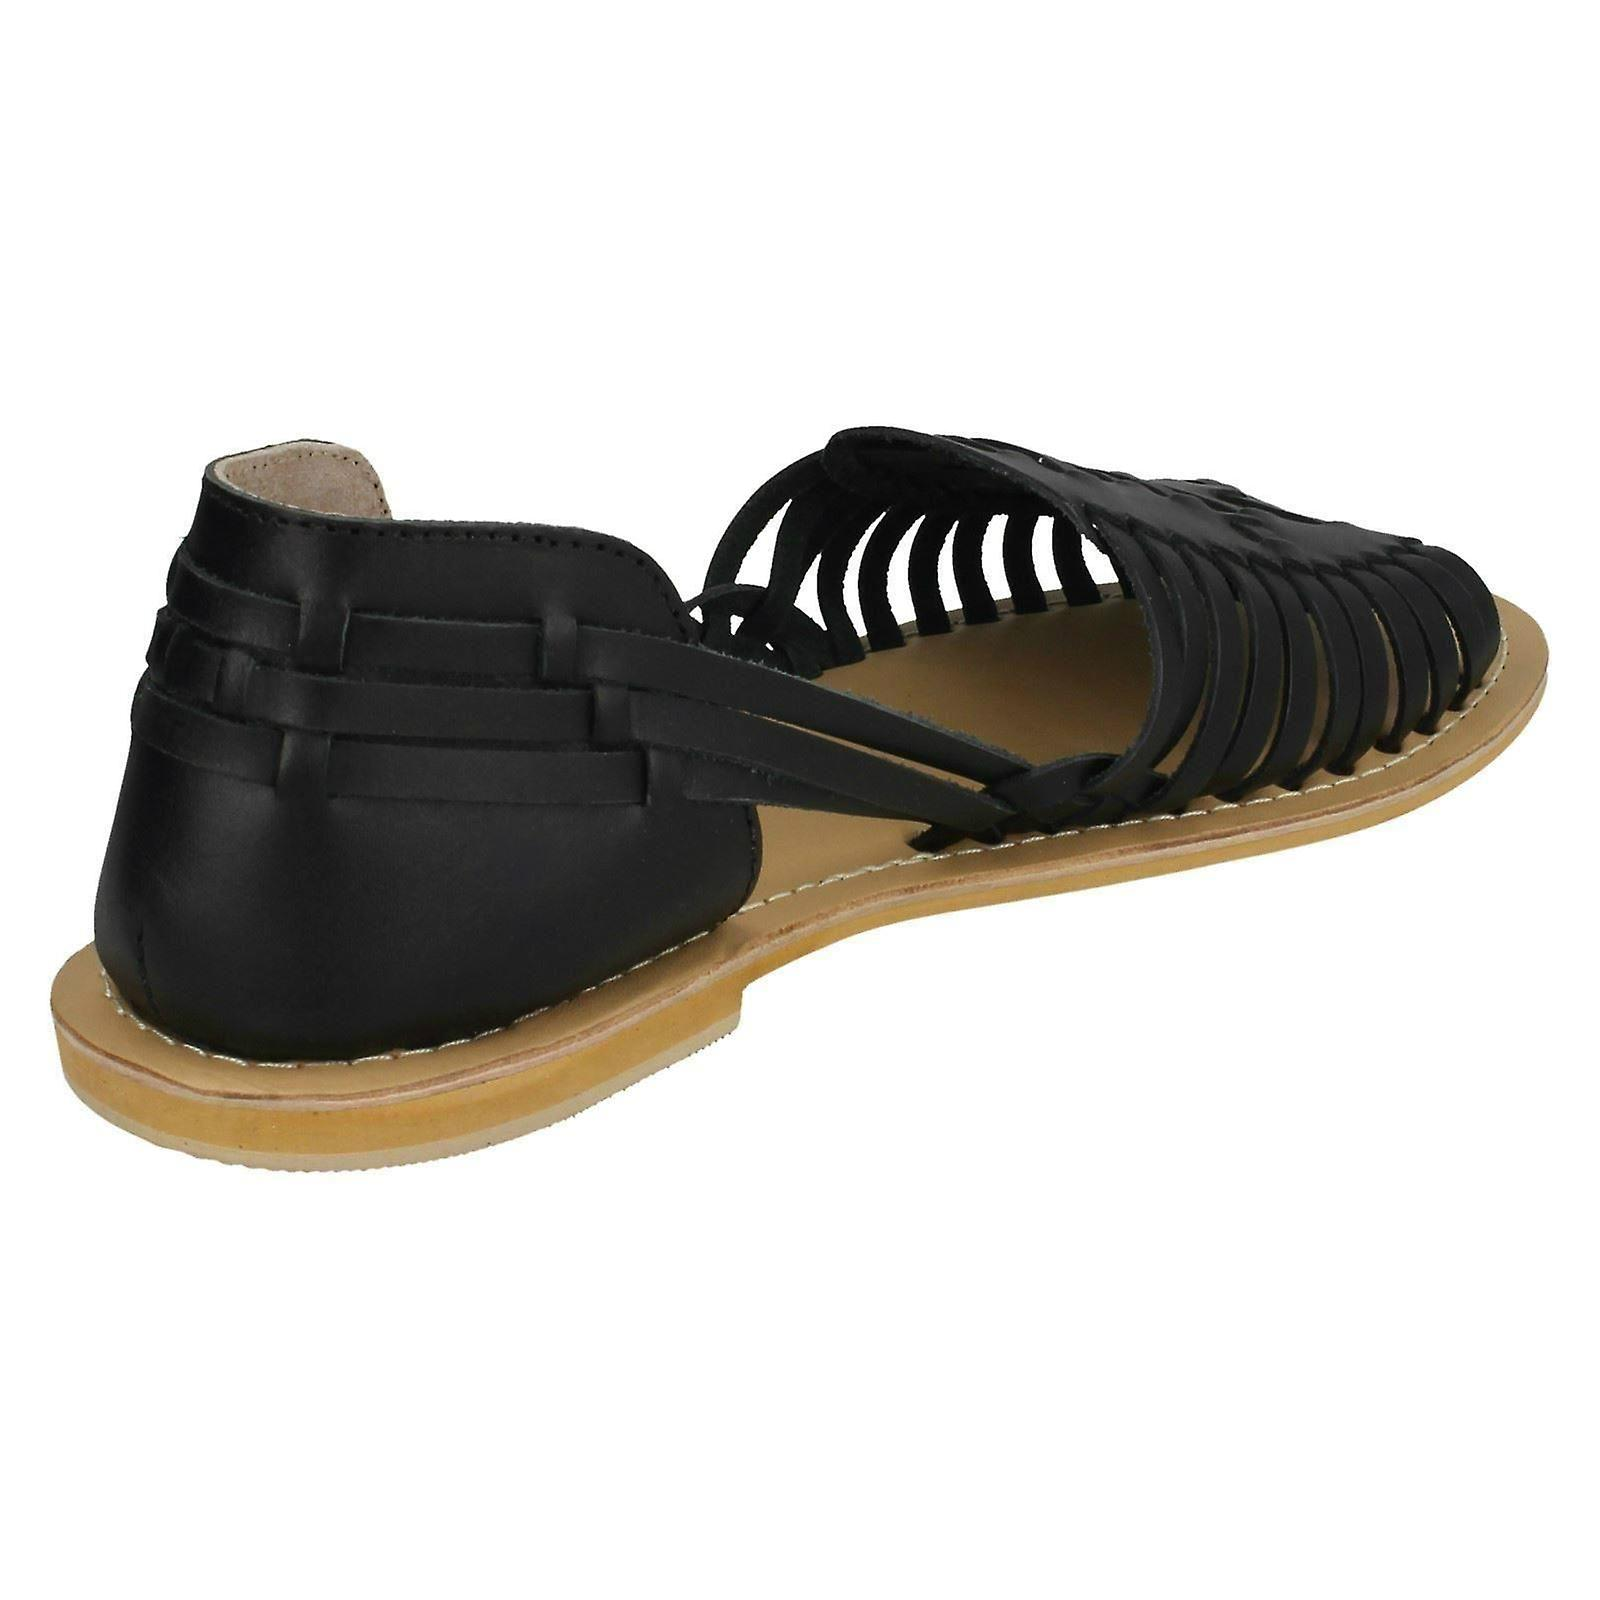 Collection US 8 Black F00145 Leather 39 Weave Ladies Size 6 Size Leather Size Flat EU UK Sandals wxB5Tx6qnC